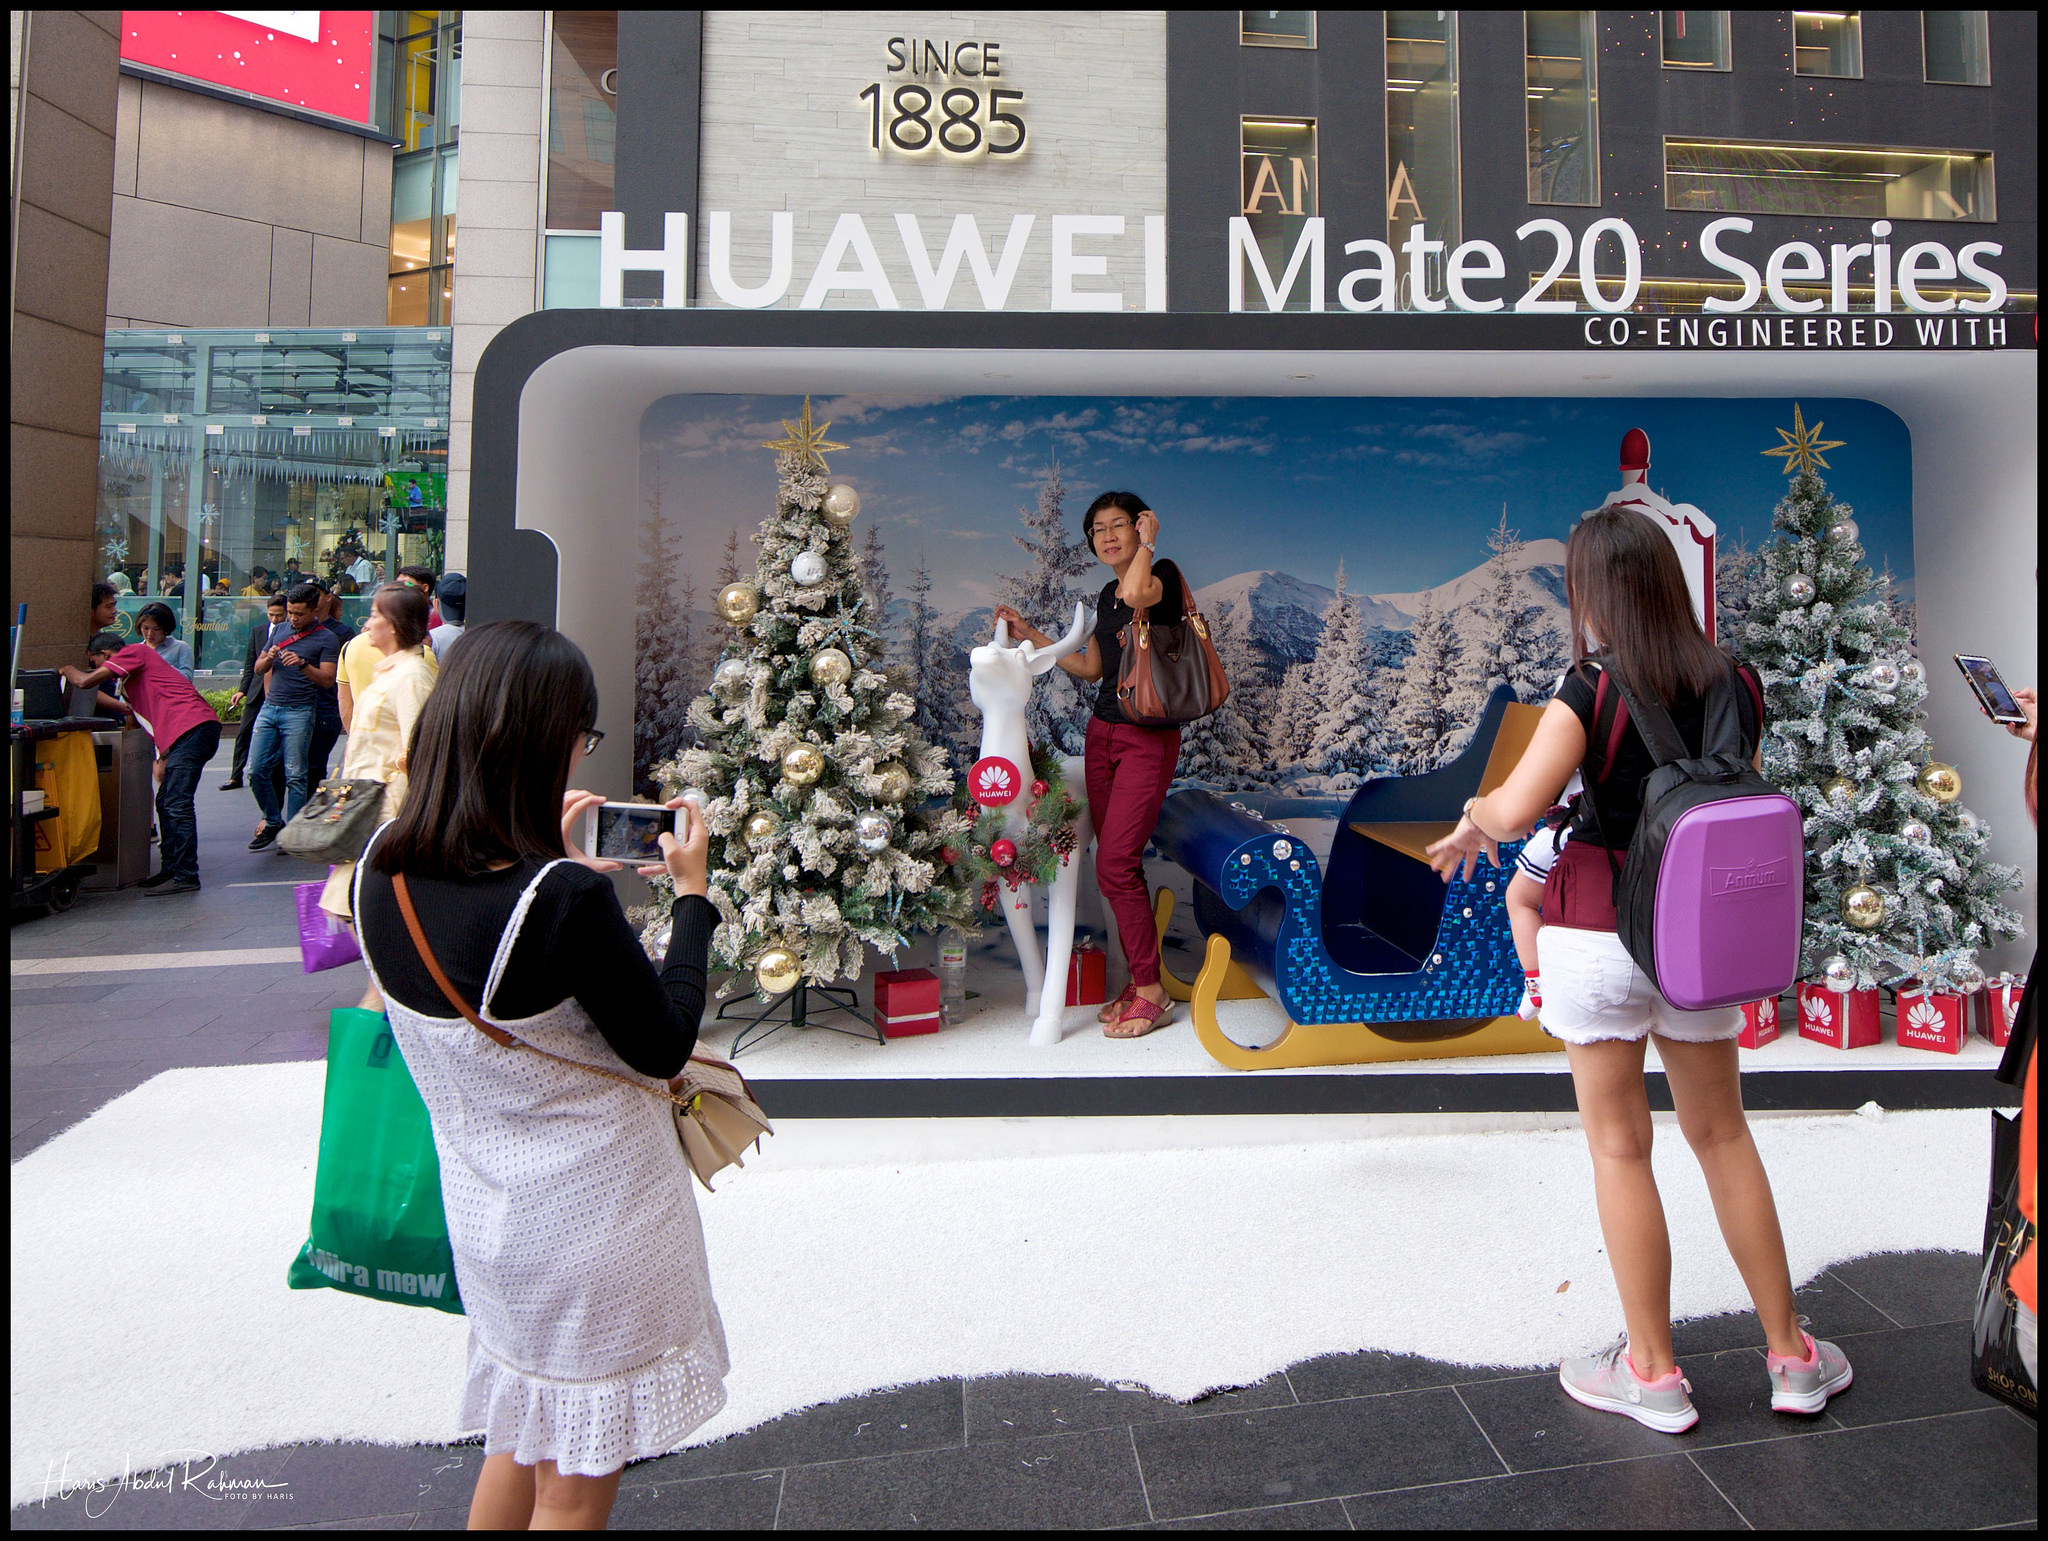 I wonder how much Huawei paid for the adverts? They were everywhere …